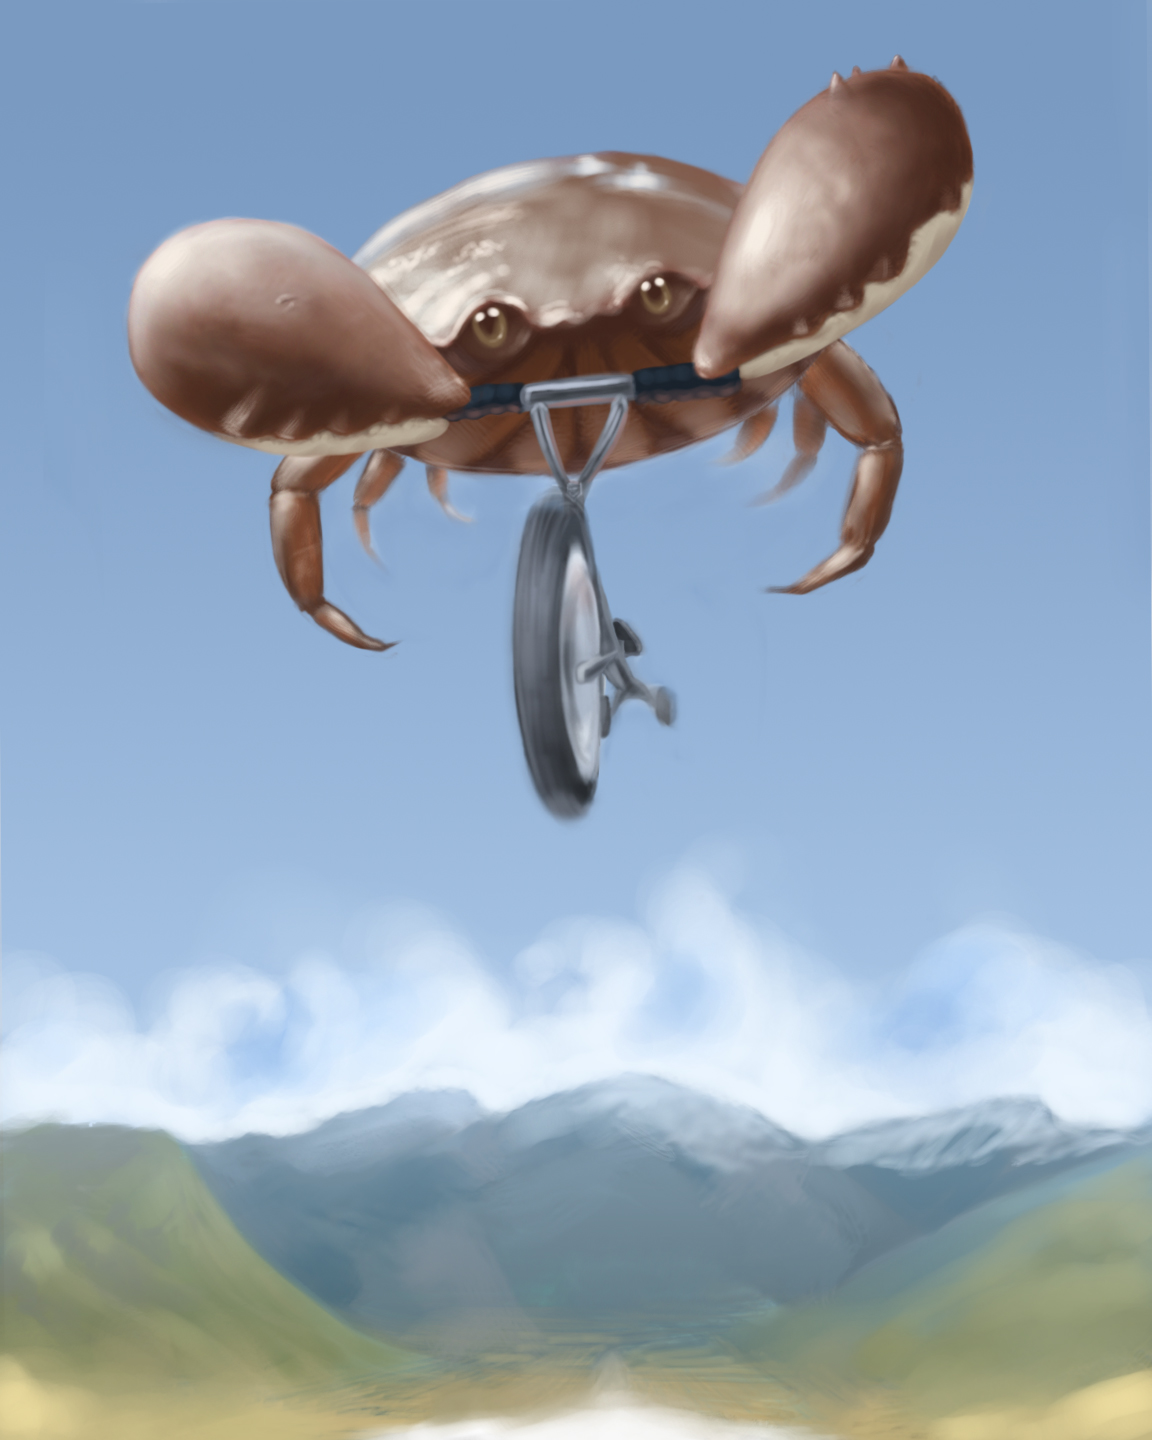 Crab on a tricycle